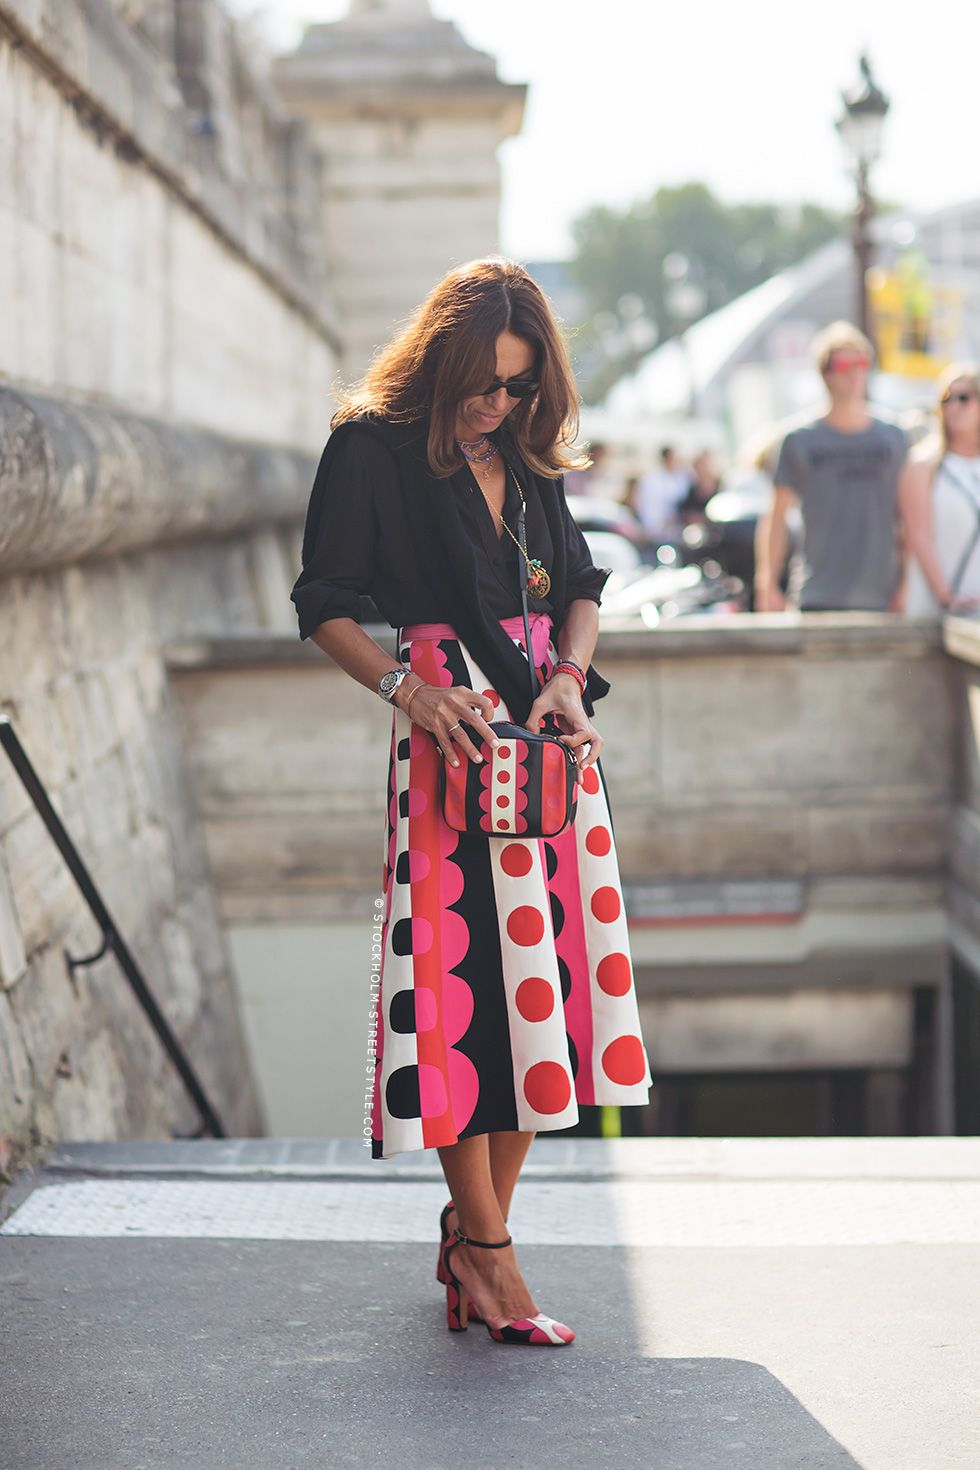 Oh, love her skirt, shoes, messenger bag, her all outfit! via Carolines Mode | StockholmStreetStyle